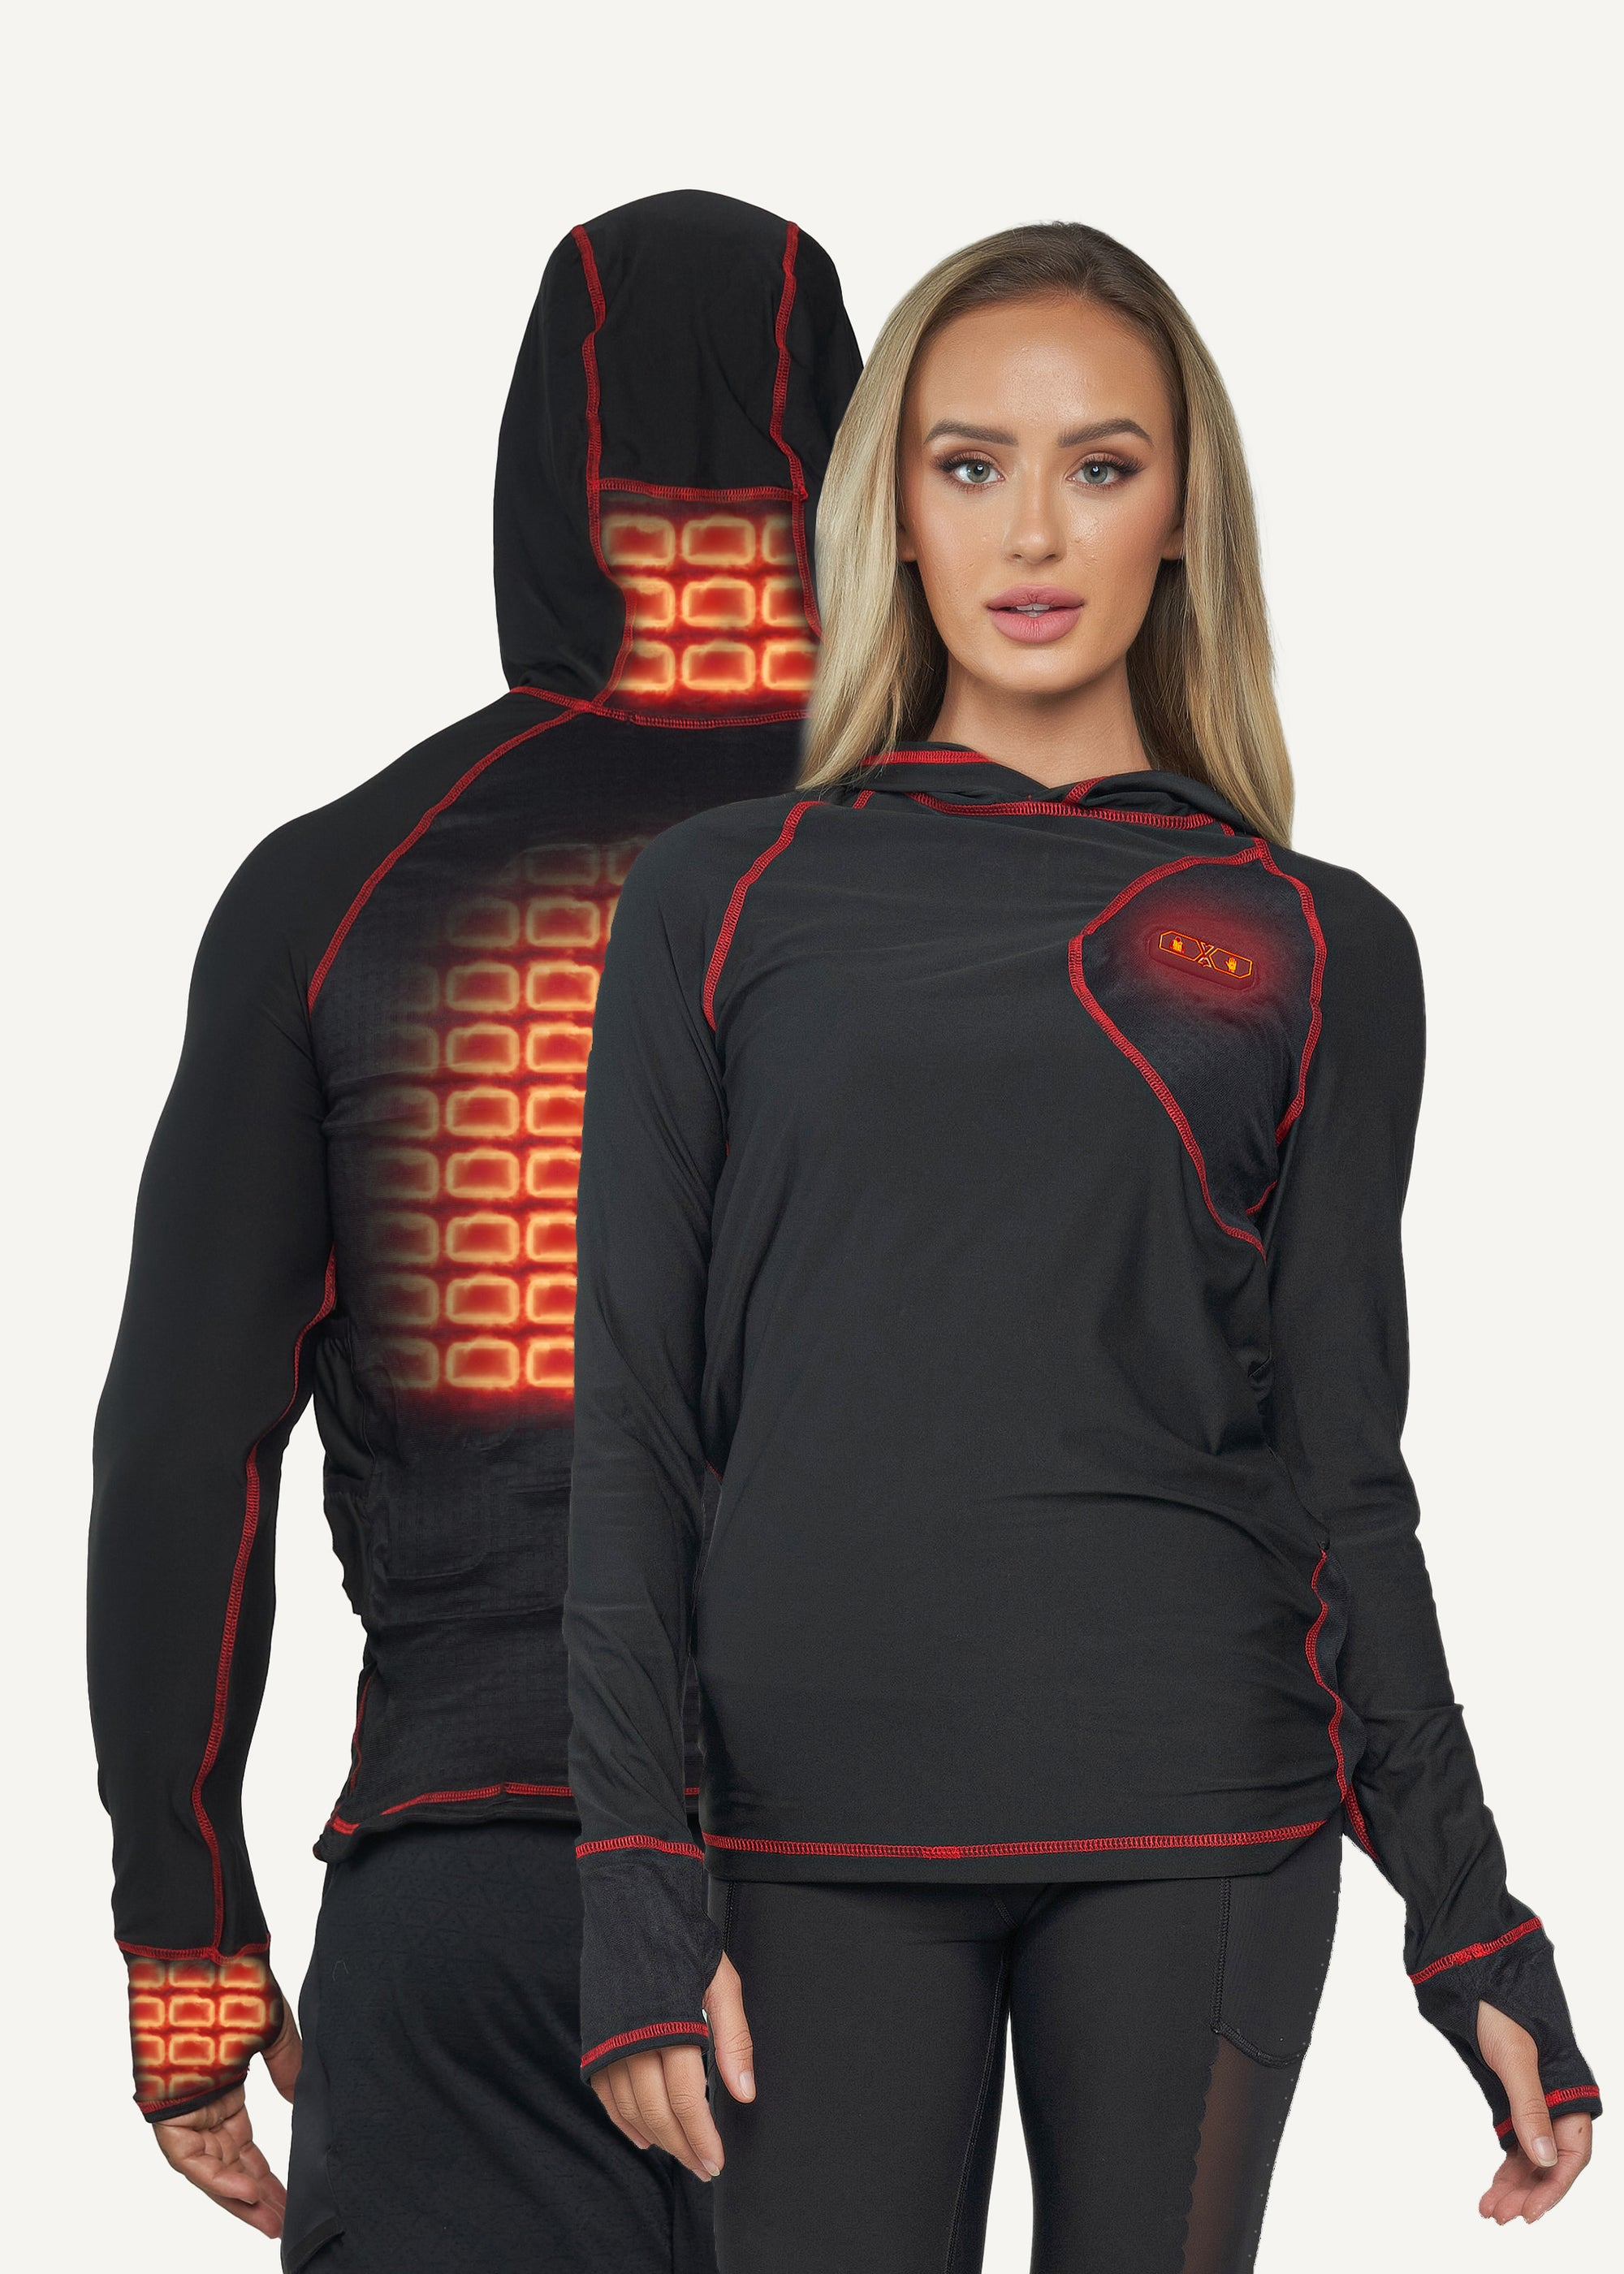 FNDN Heated Skin-Fit Base Layer - Unisex